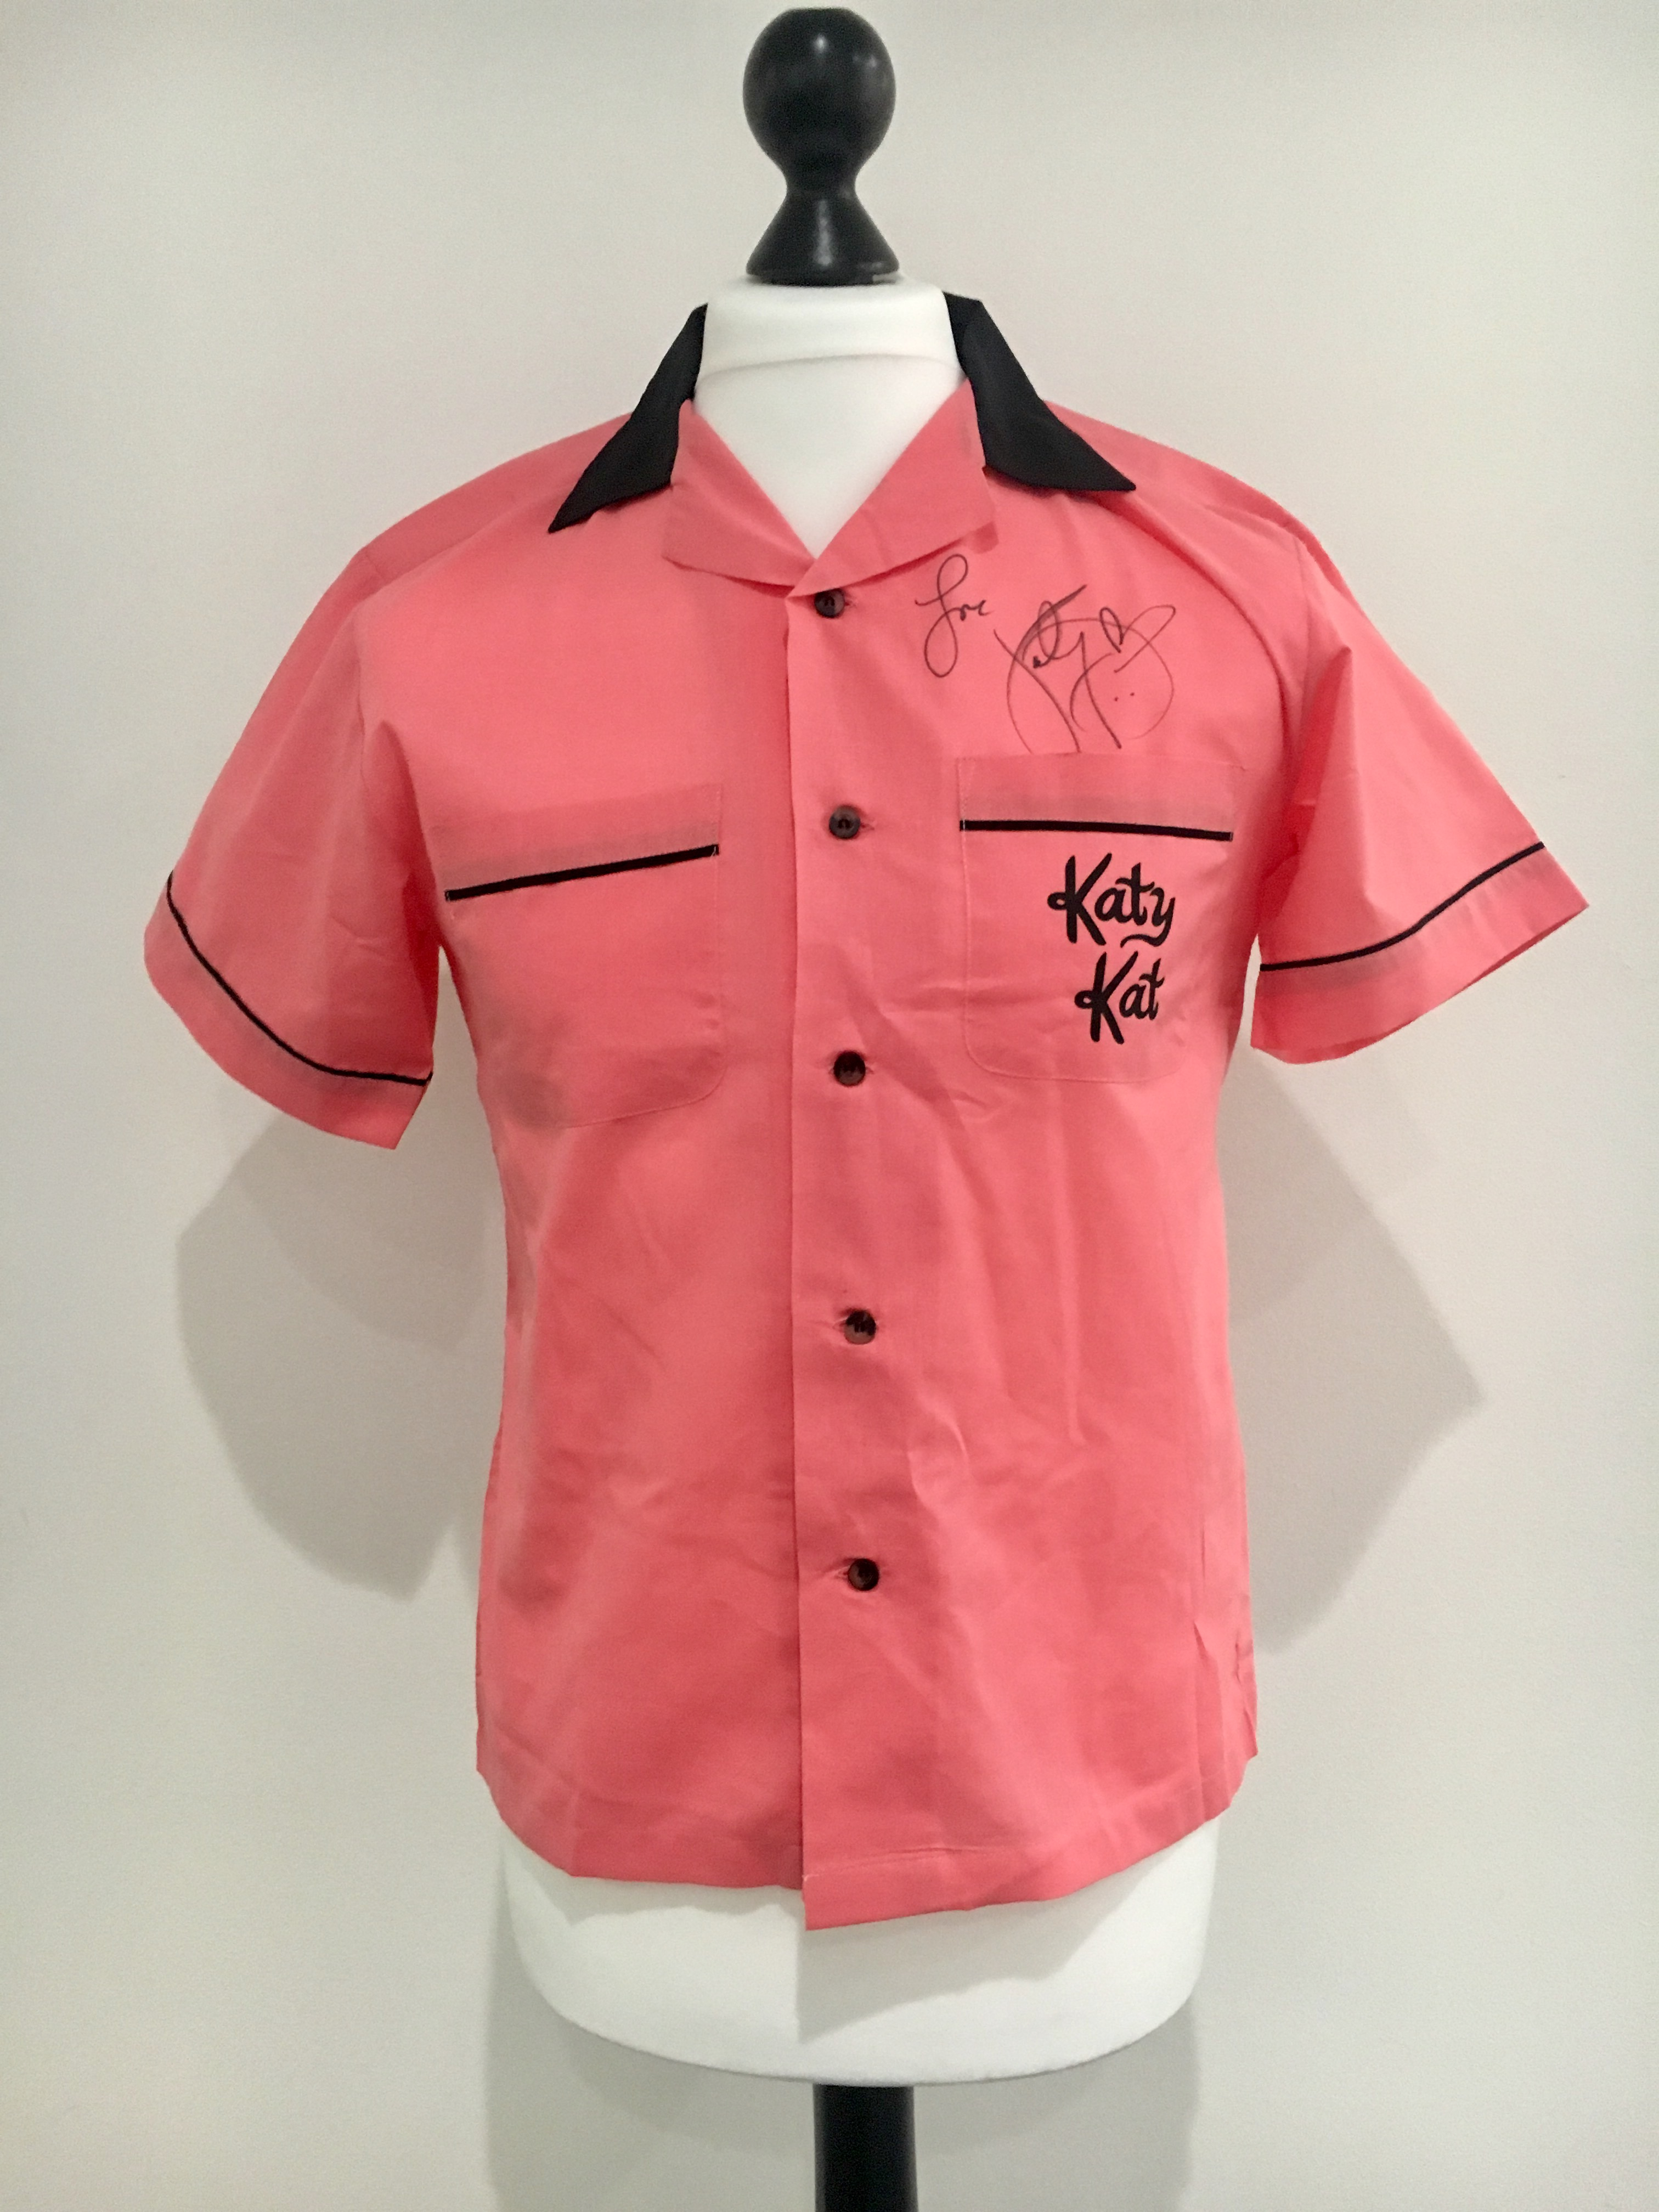 Signed Katy perry Shirt